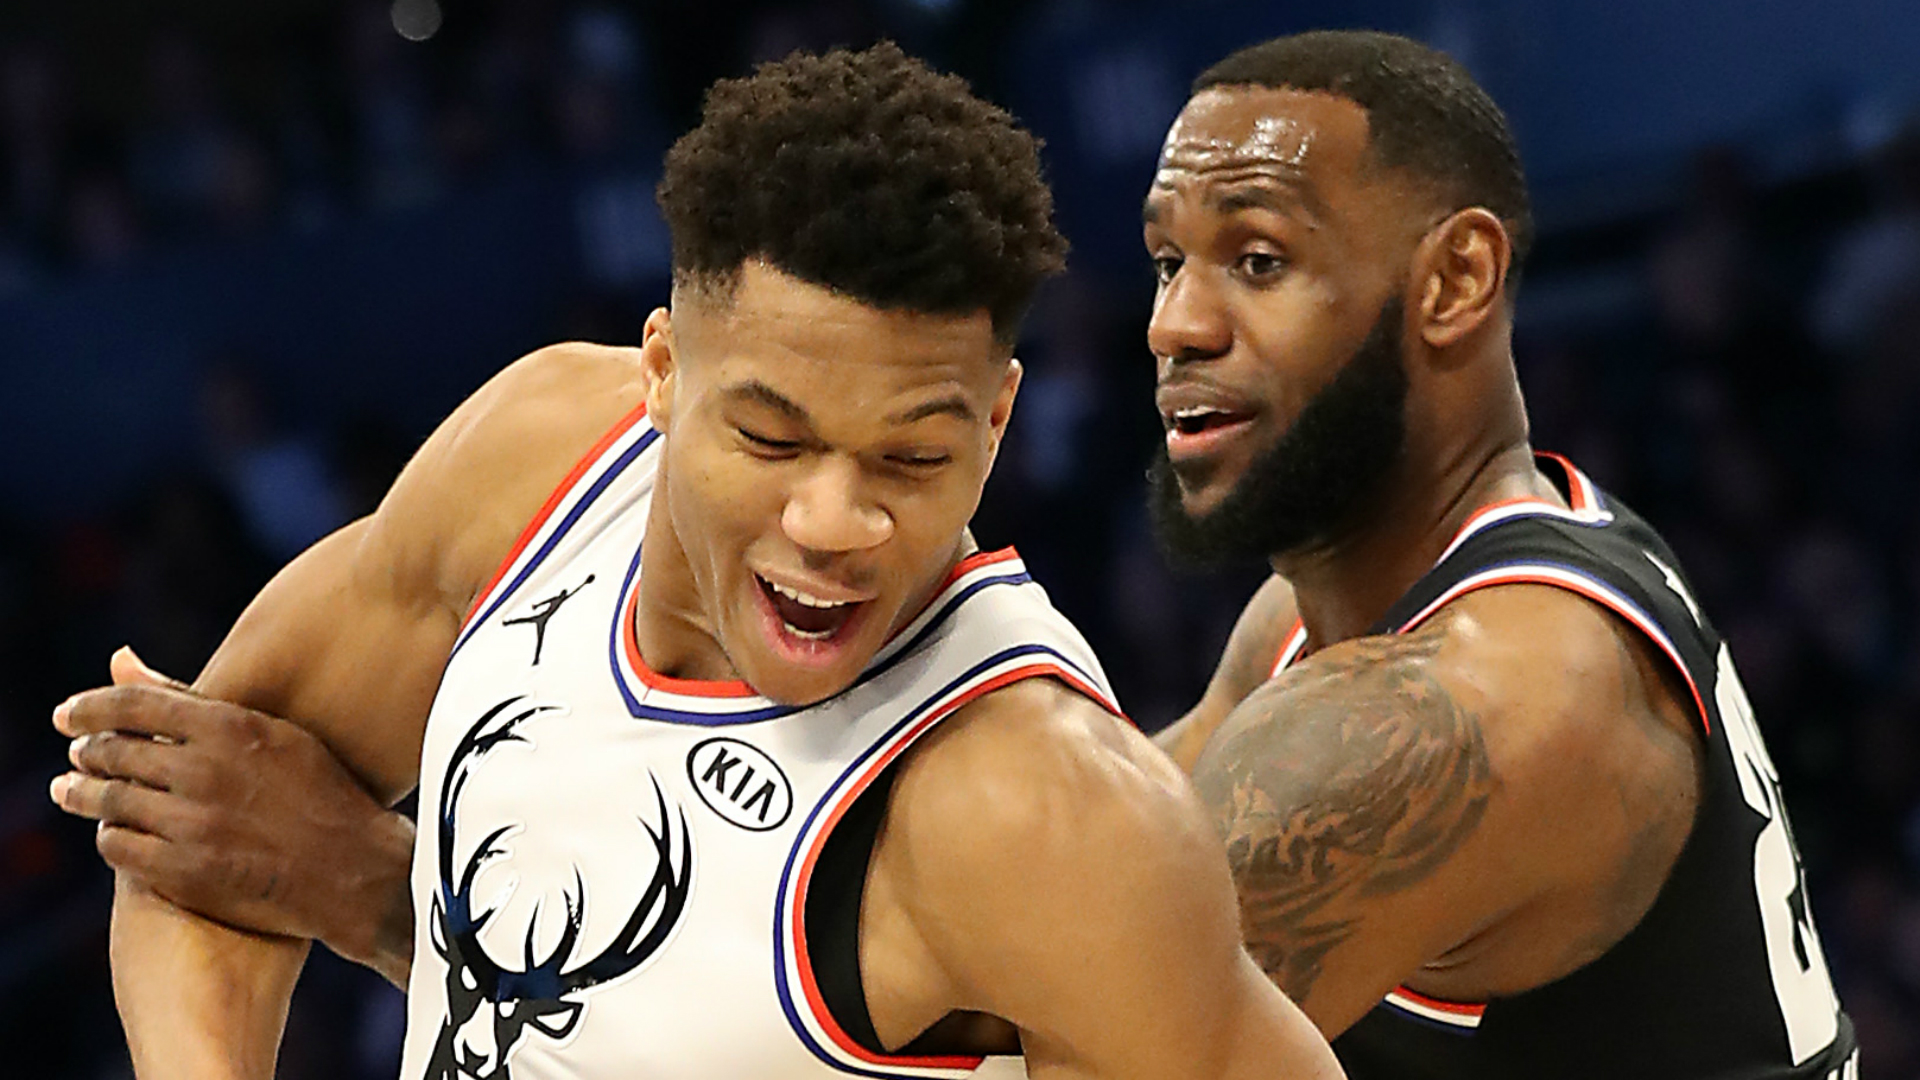 Team LeBron & Team Giannis finalise squads for NBA All-Star Game